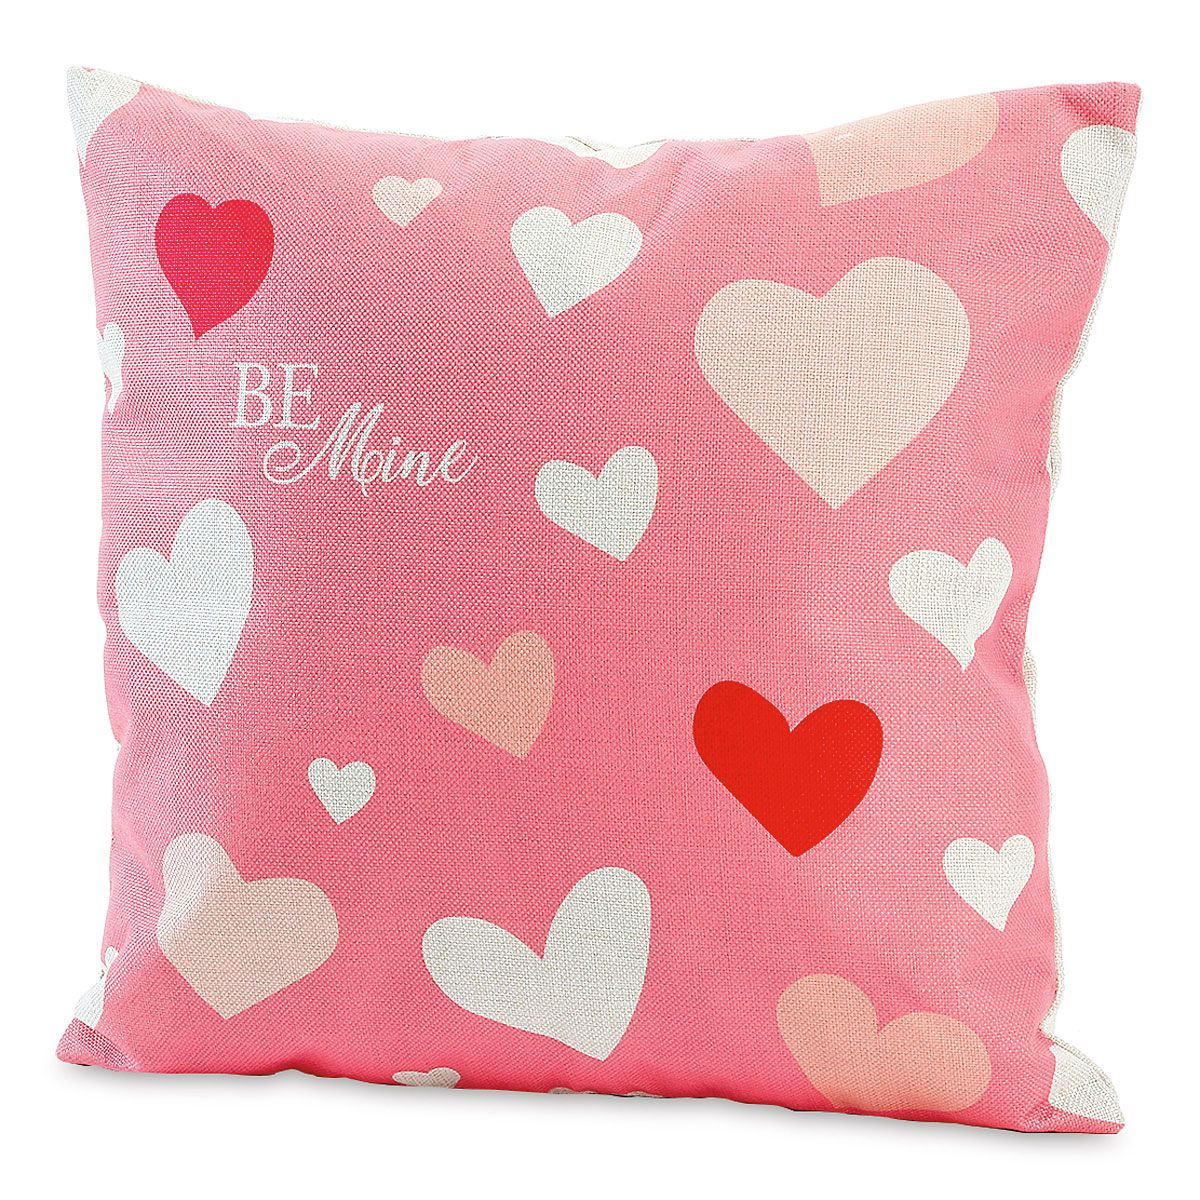 Hearts Valentine Pillow Cover